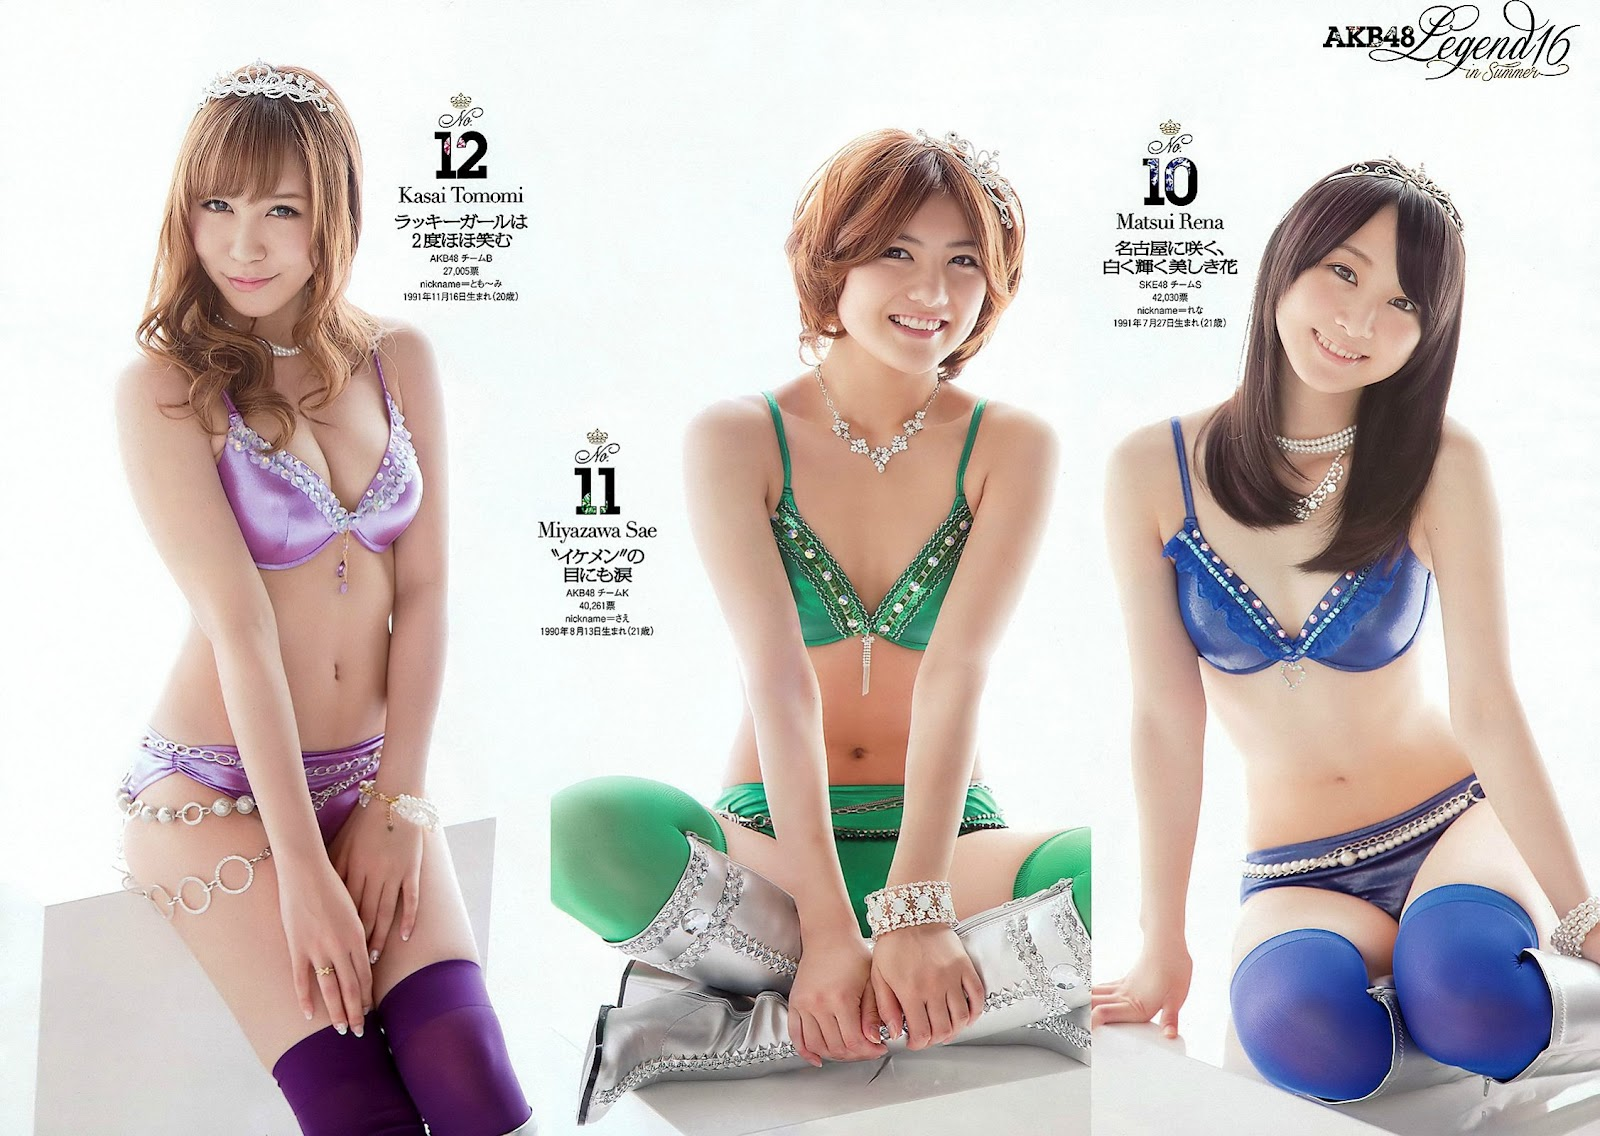 akb48 pussy undefined